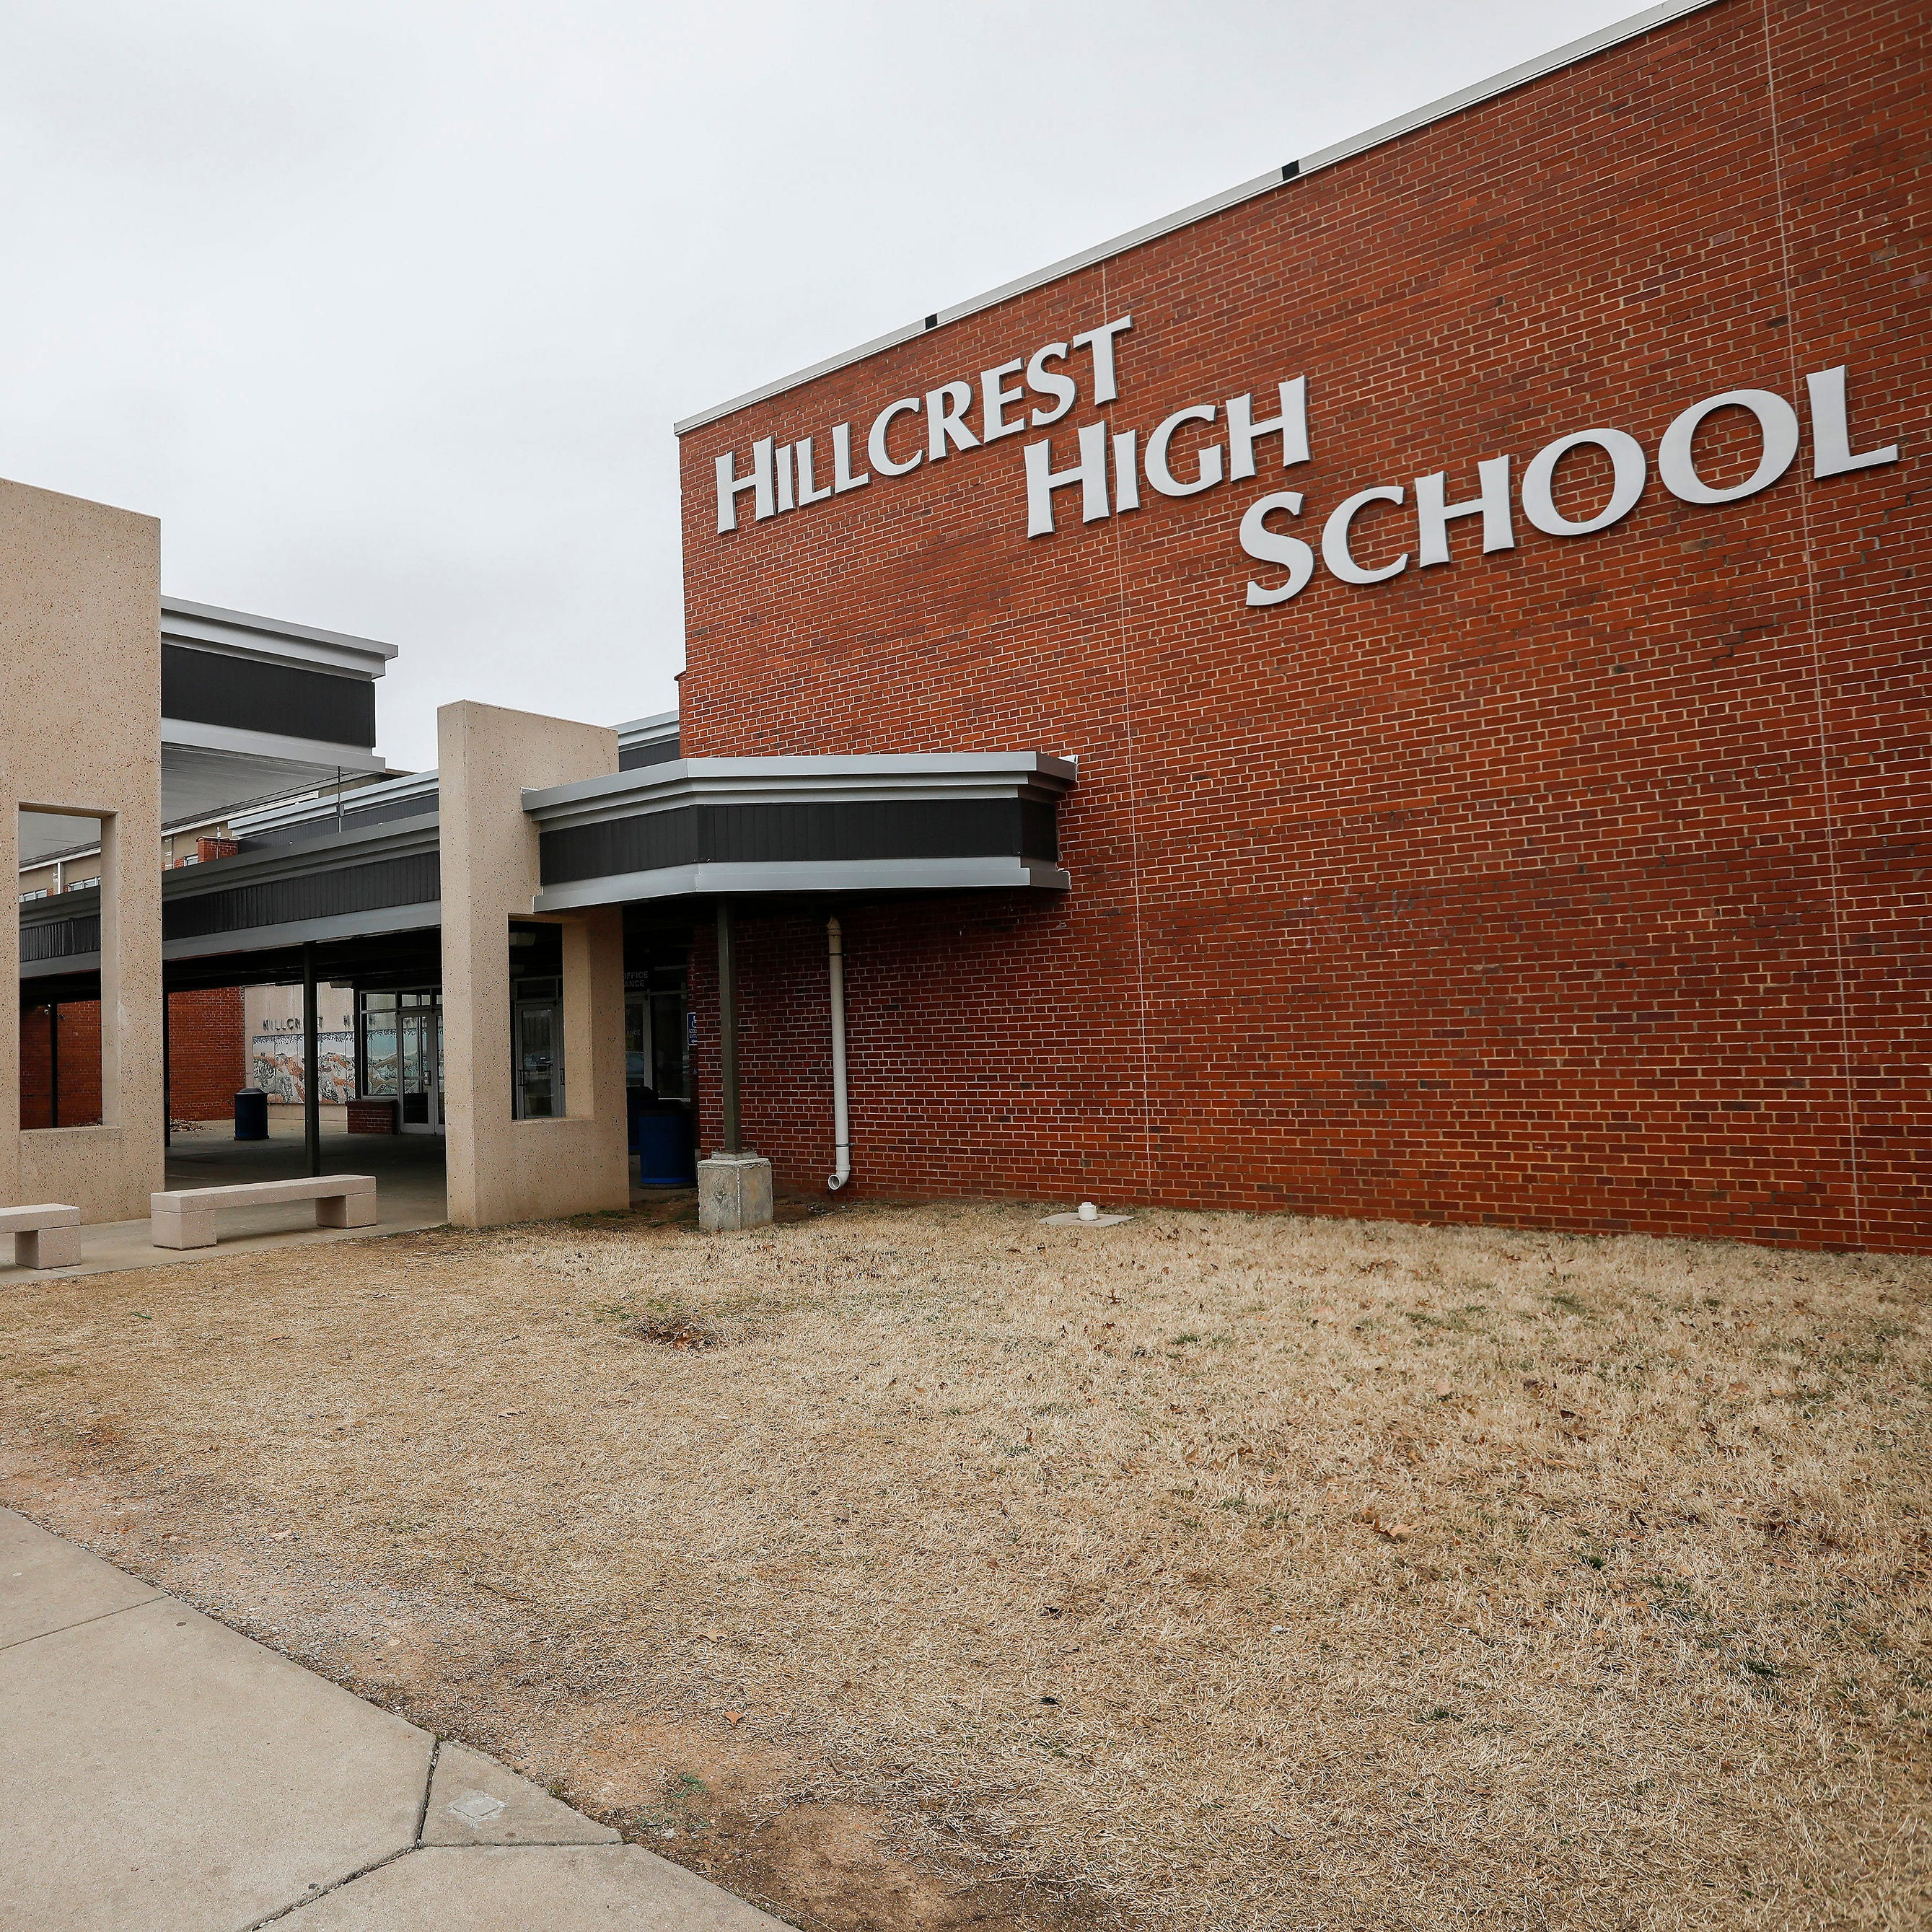 Springfield police investigate 'concerning' social media post at Hillcrest High